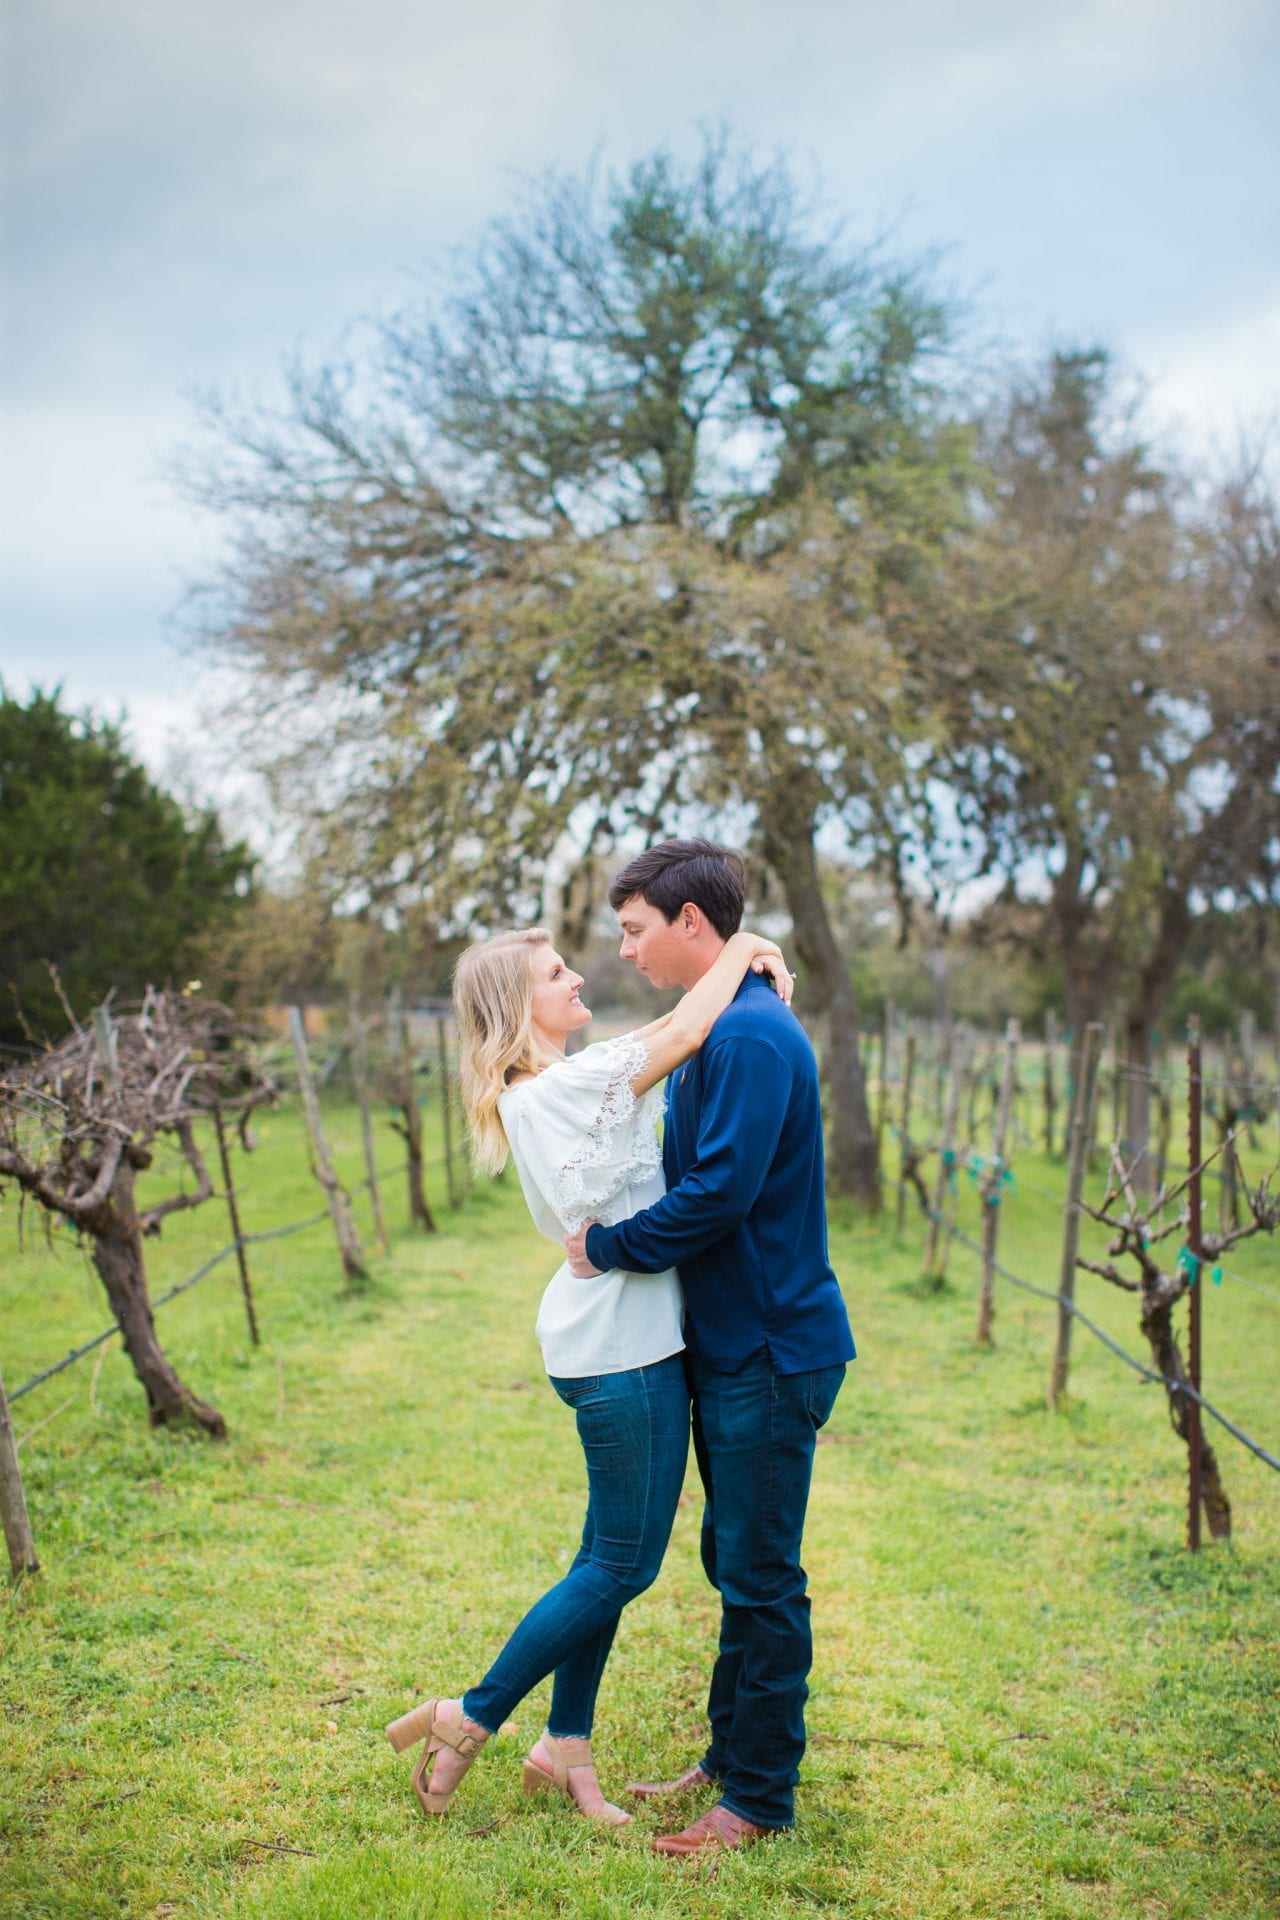 Michele Engagement session in the vines at Oak Valley Vineyards